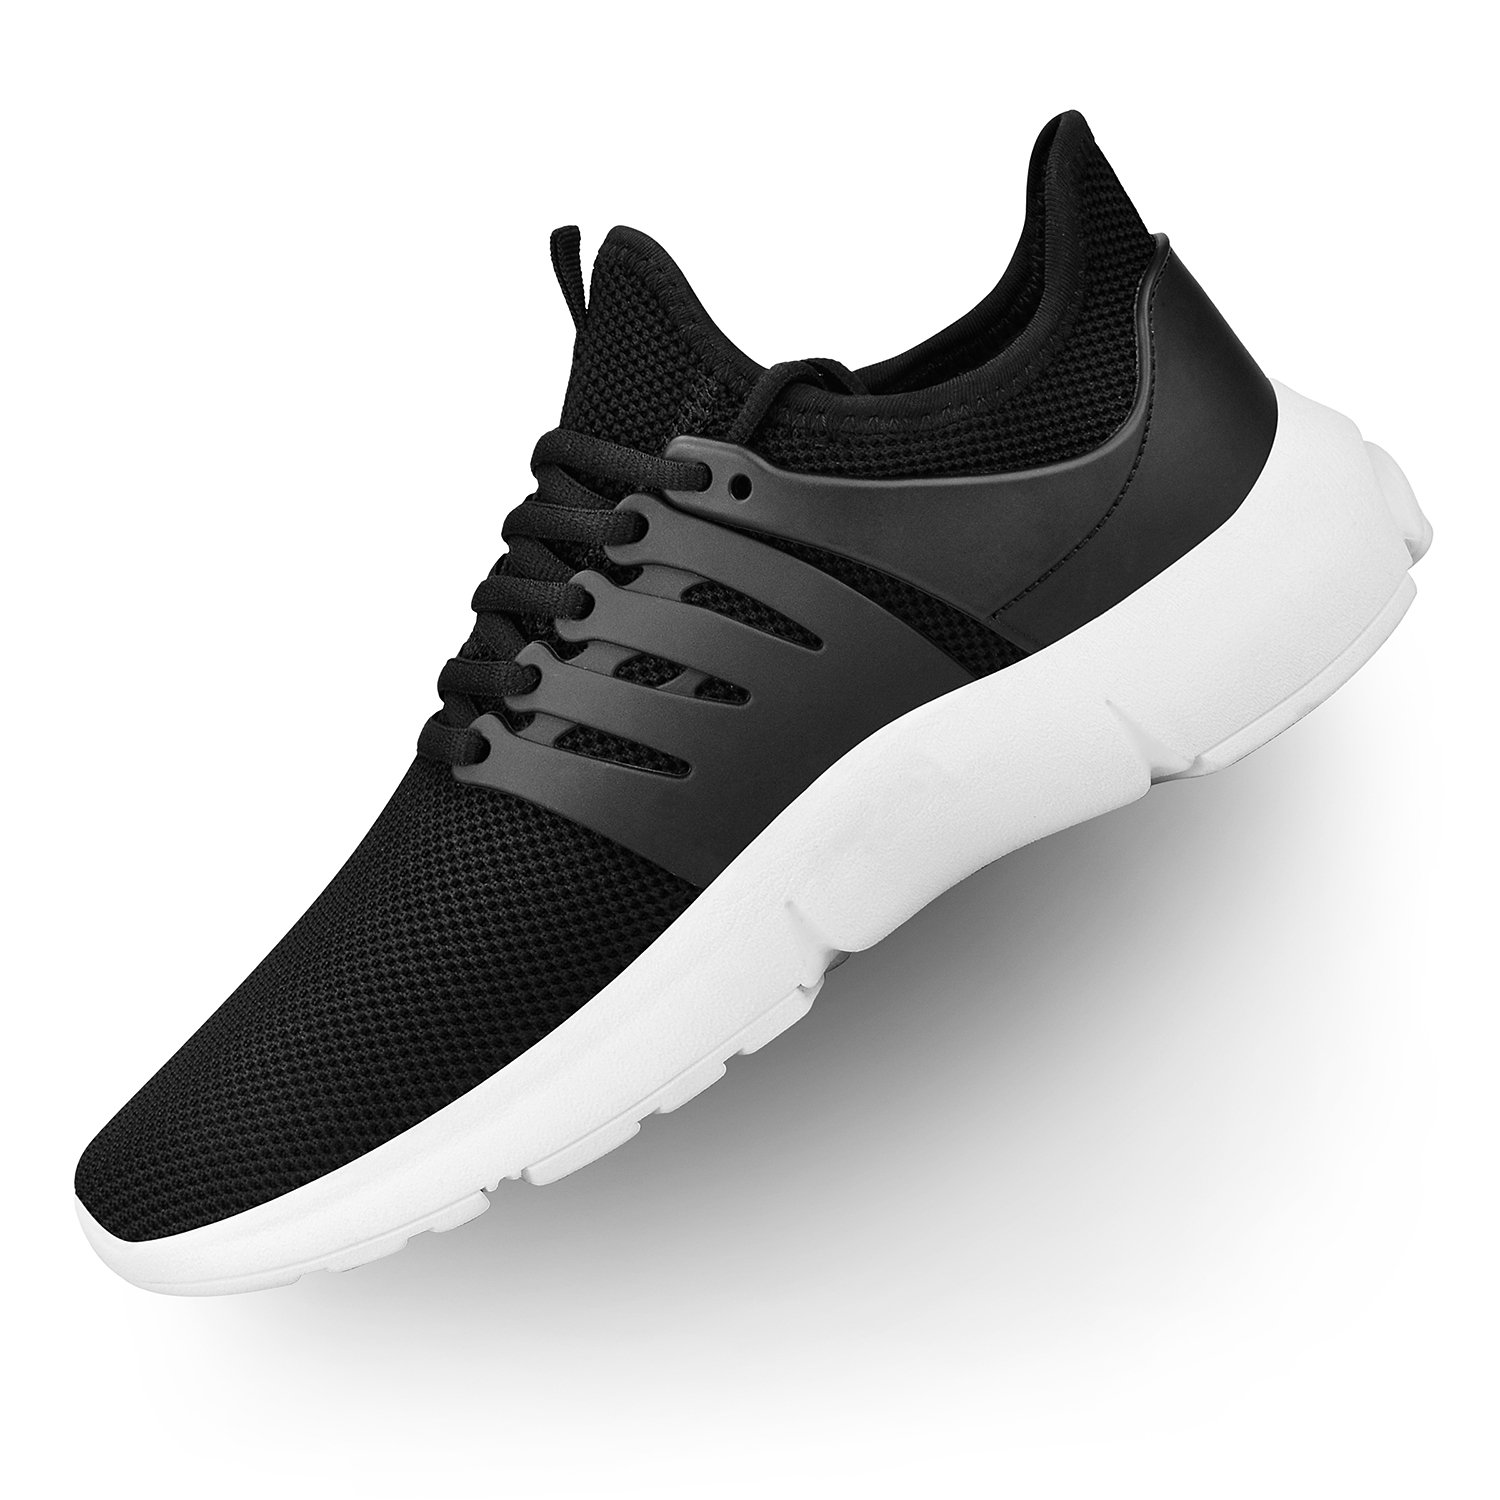 Troadlop Womens Running Sneakers Ultra Lightweight Breathable Mesh Walking Athletic Shoes(Size 5.5-13 US) B07D3XBKZF 8 M US|Black/White